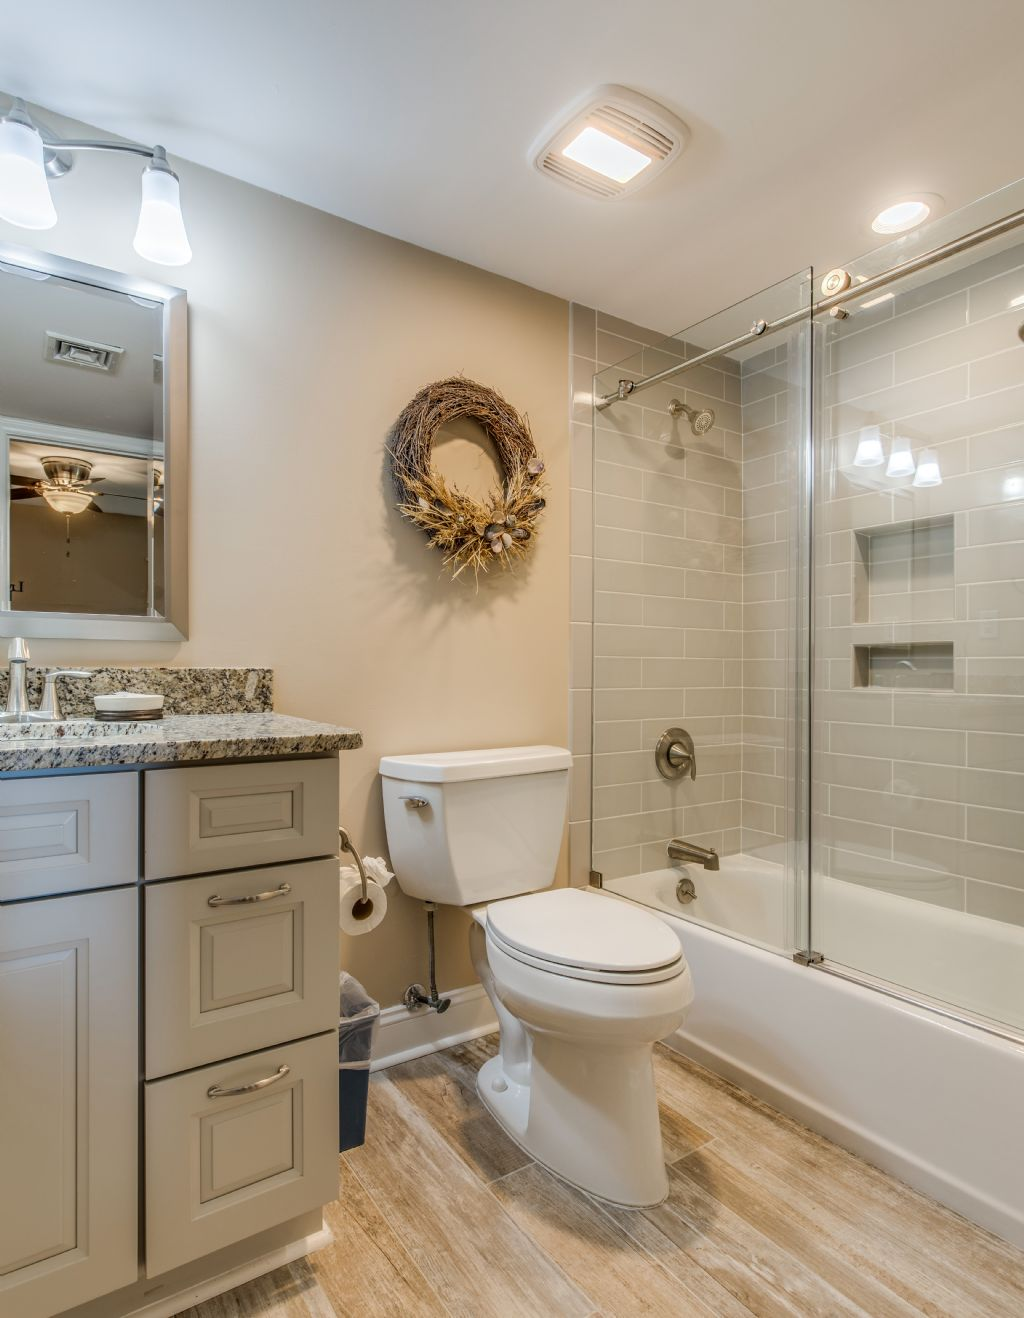 Chas. Oceanfront Villas 308 - Carolina Gold | Photo 19